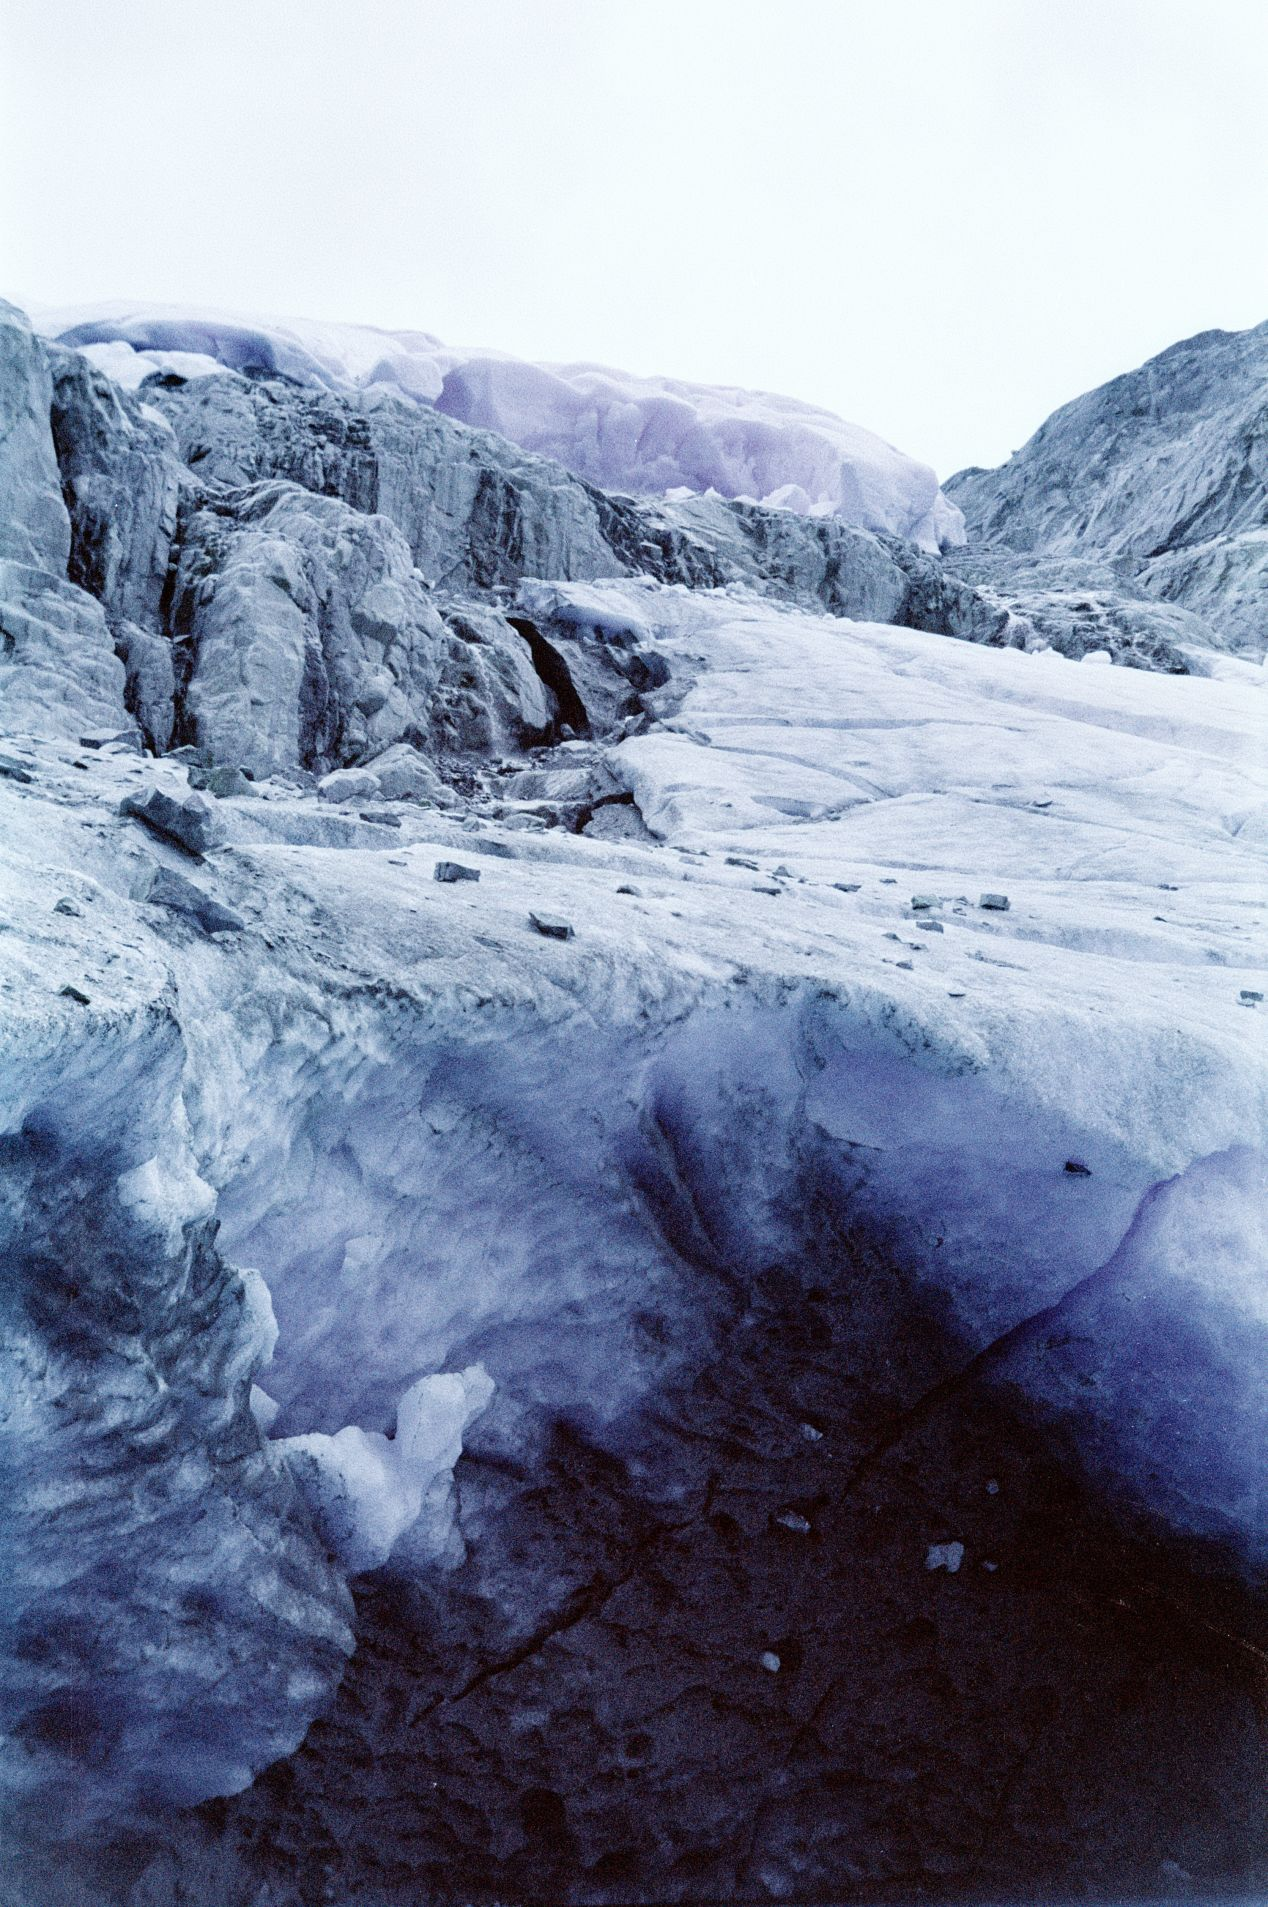 A glacier at Wedgemount lake on Kodak Aerochrome. There isn't much IR glow to speak of here but the colours are still rather unique and toy-like.